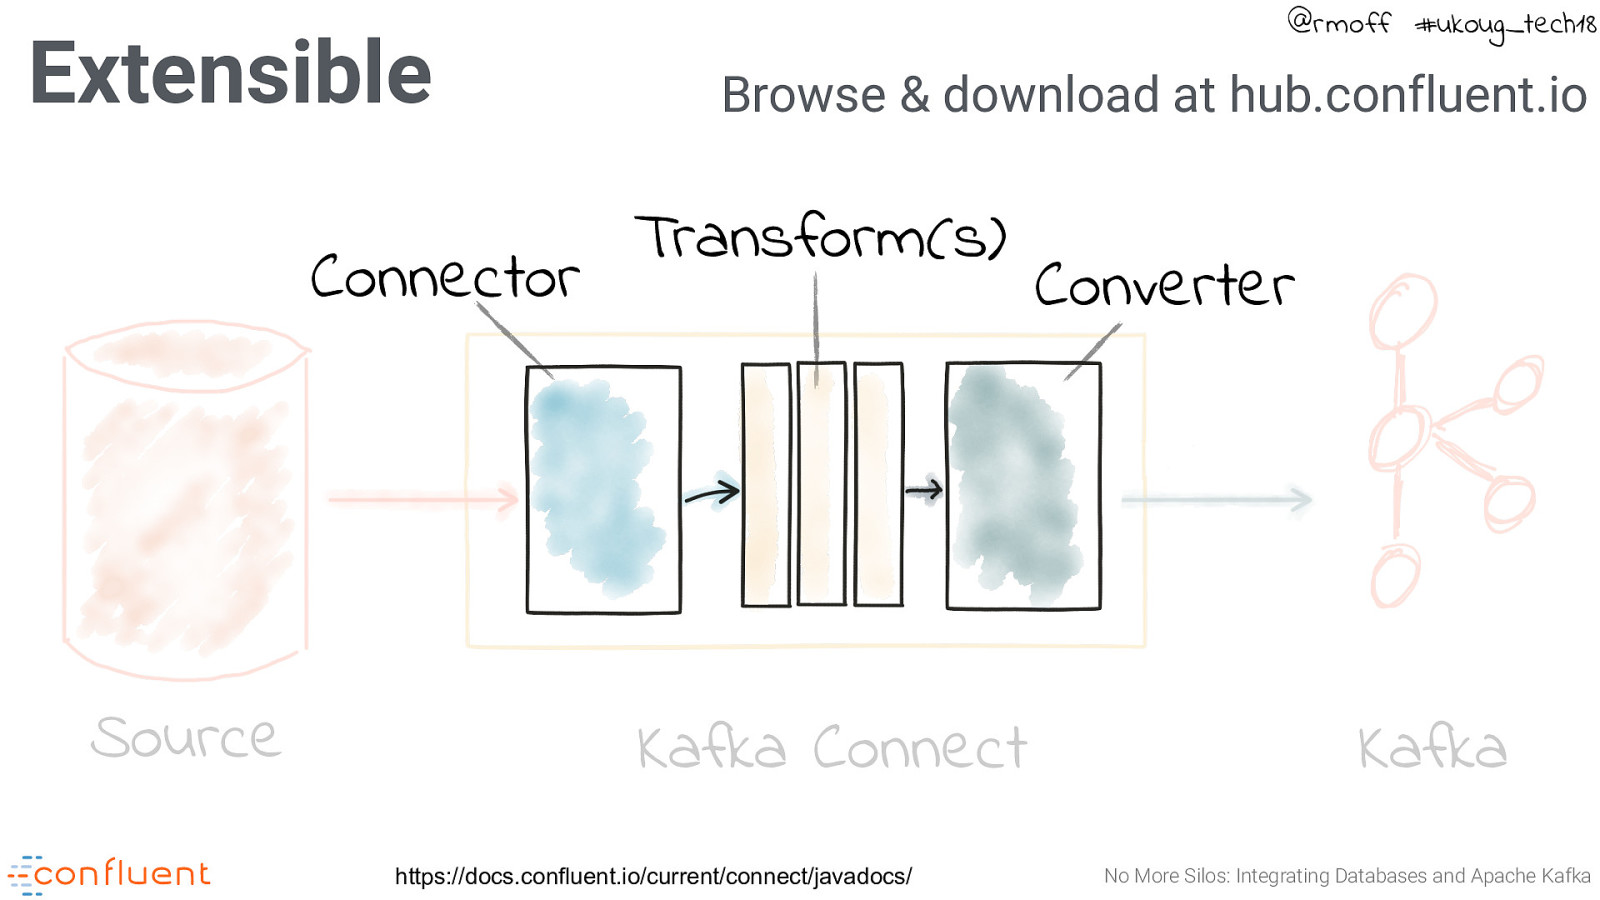 No More Silos: Integrating Databases and Apache Kafka